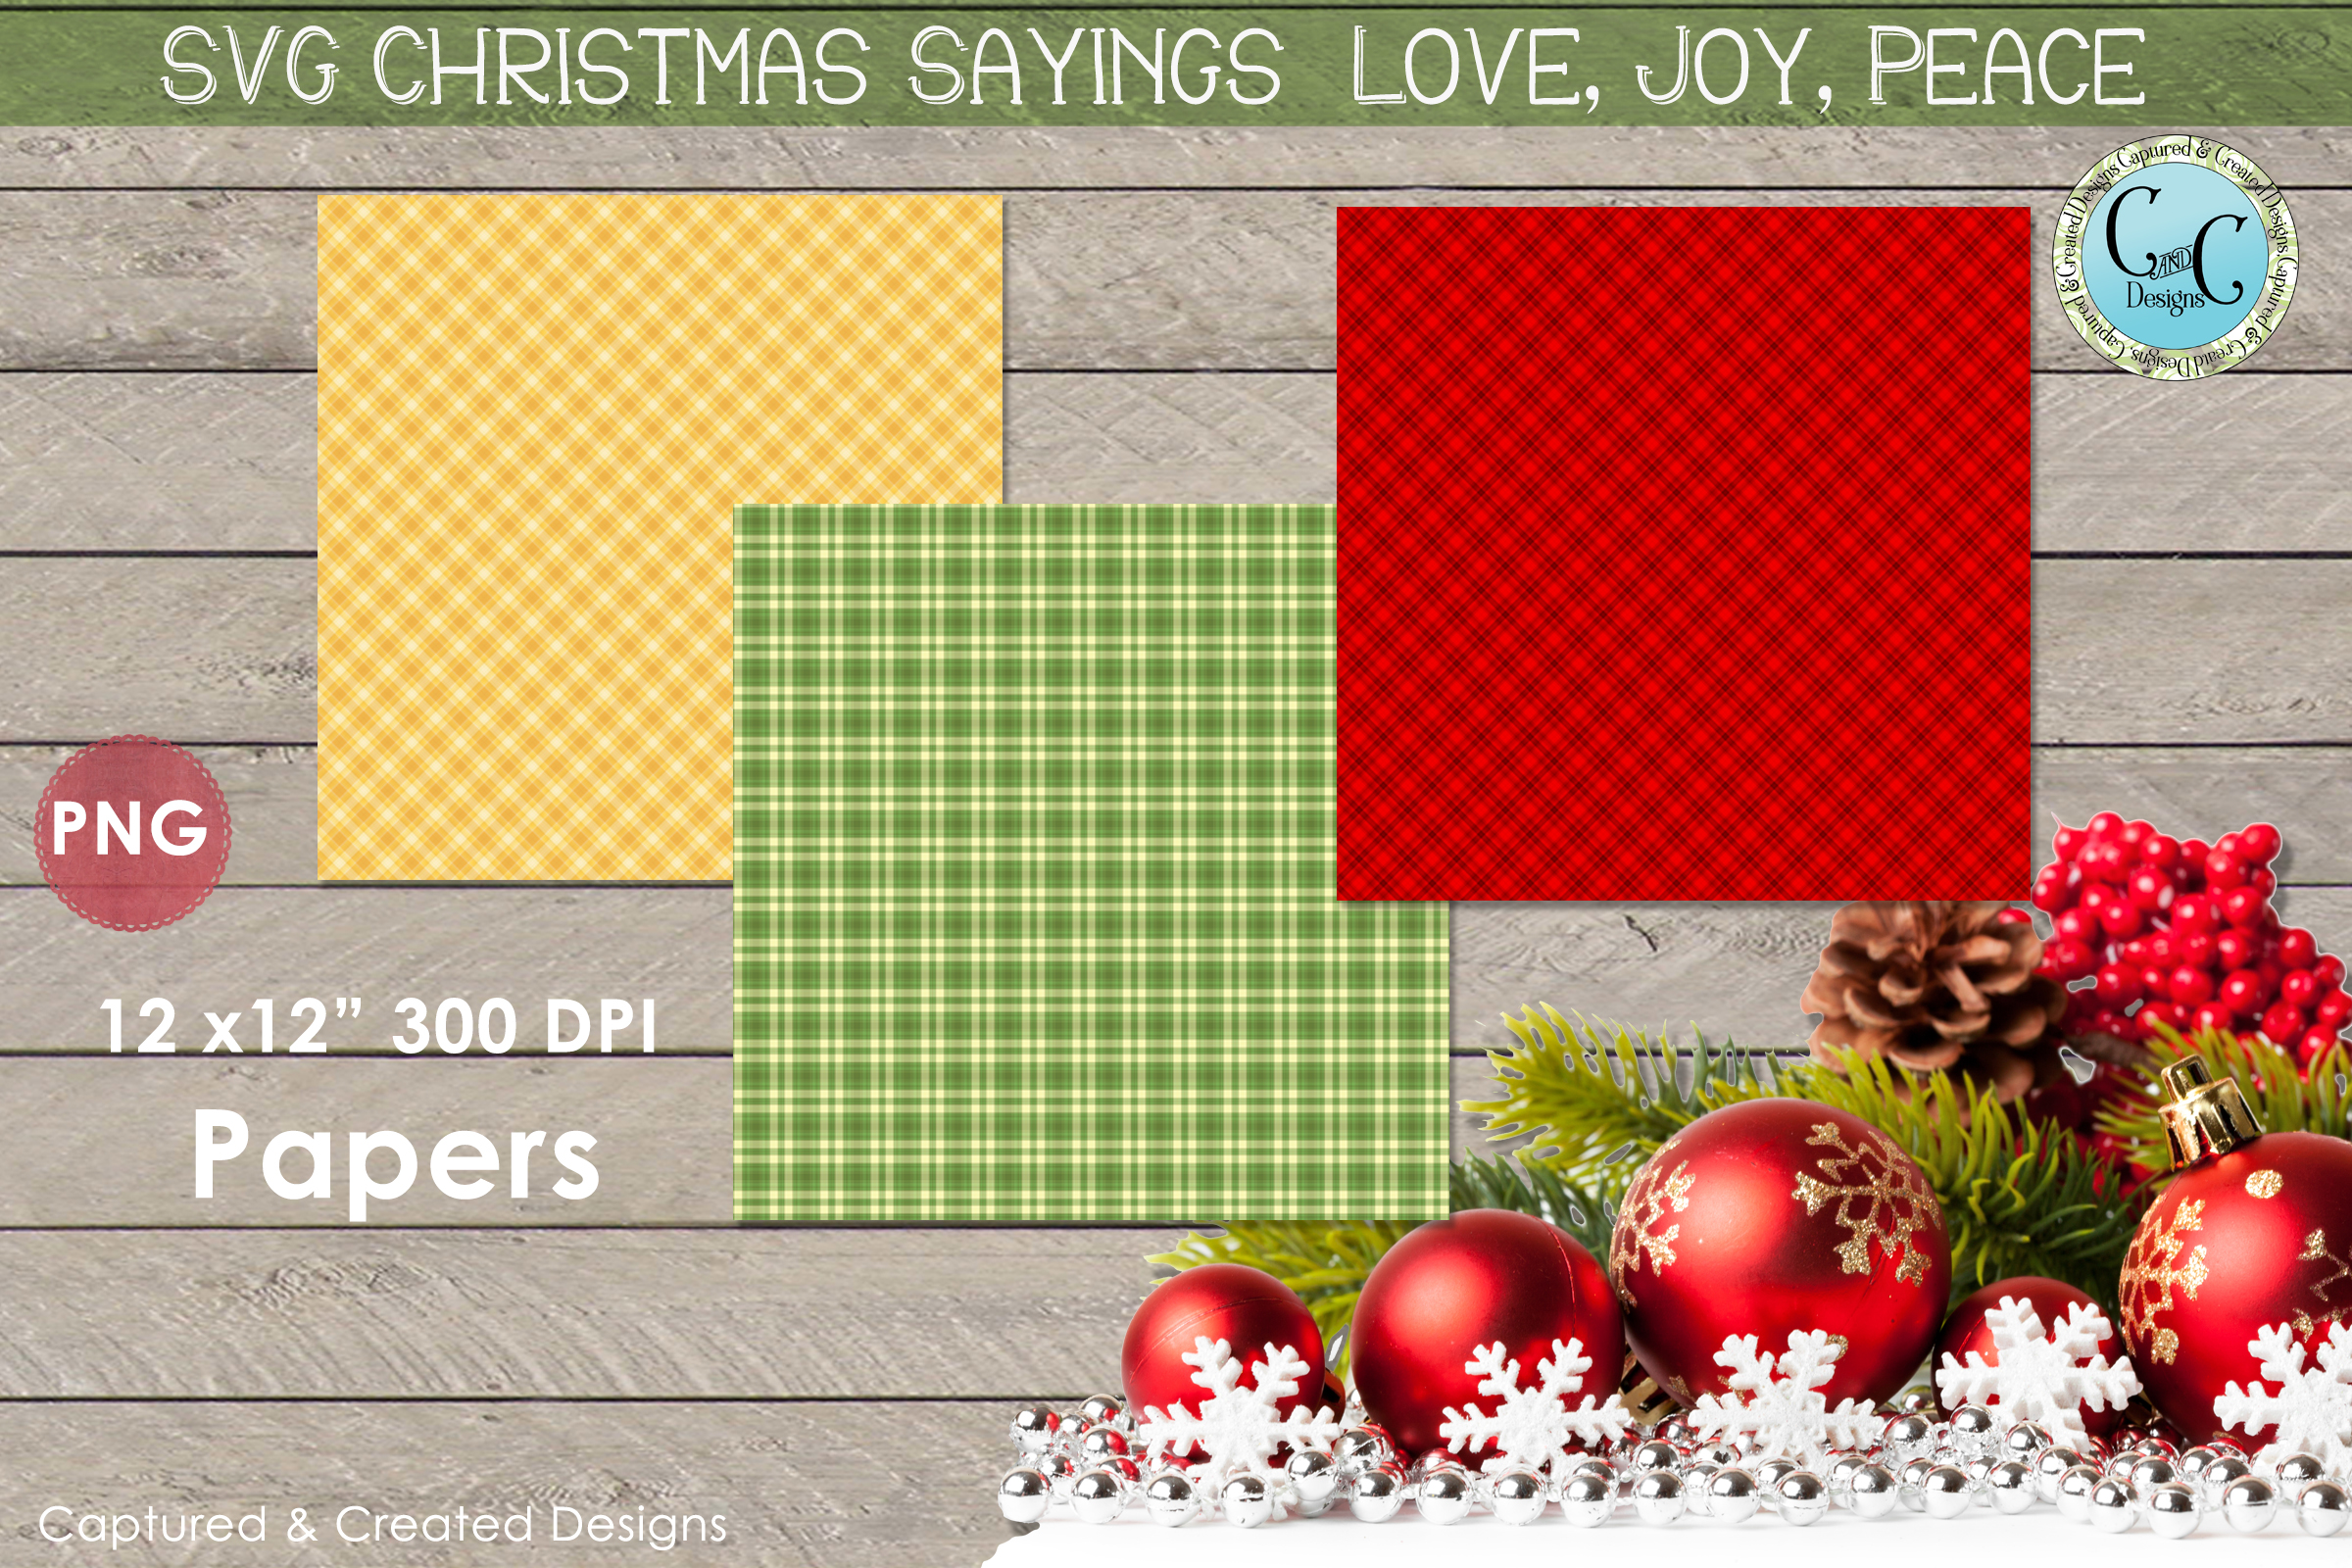 SVG Christmas Sayings Love, Joy Peace with Patterned Papers- example image 2